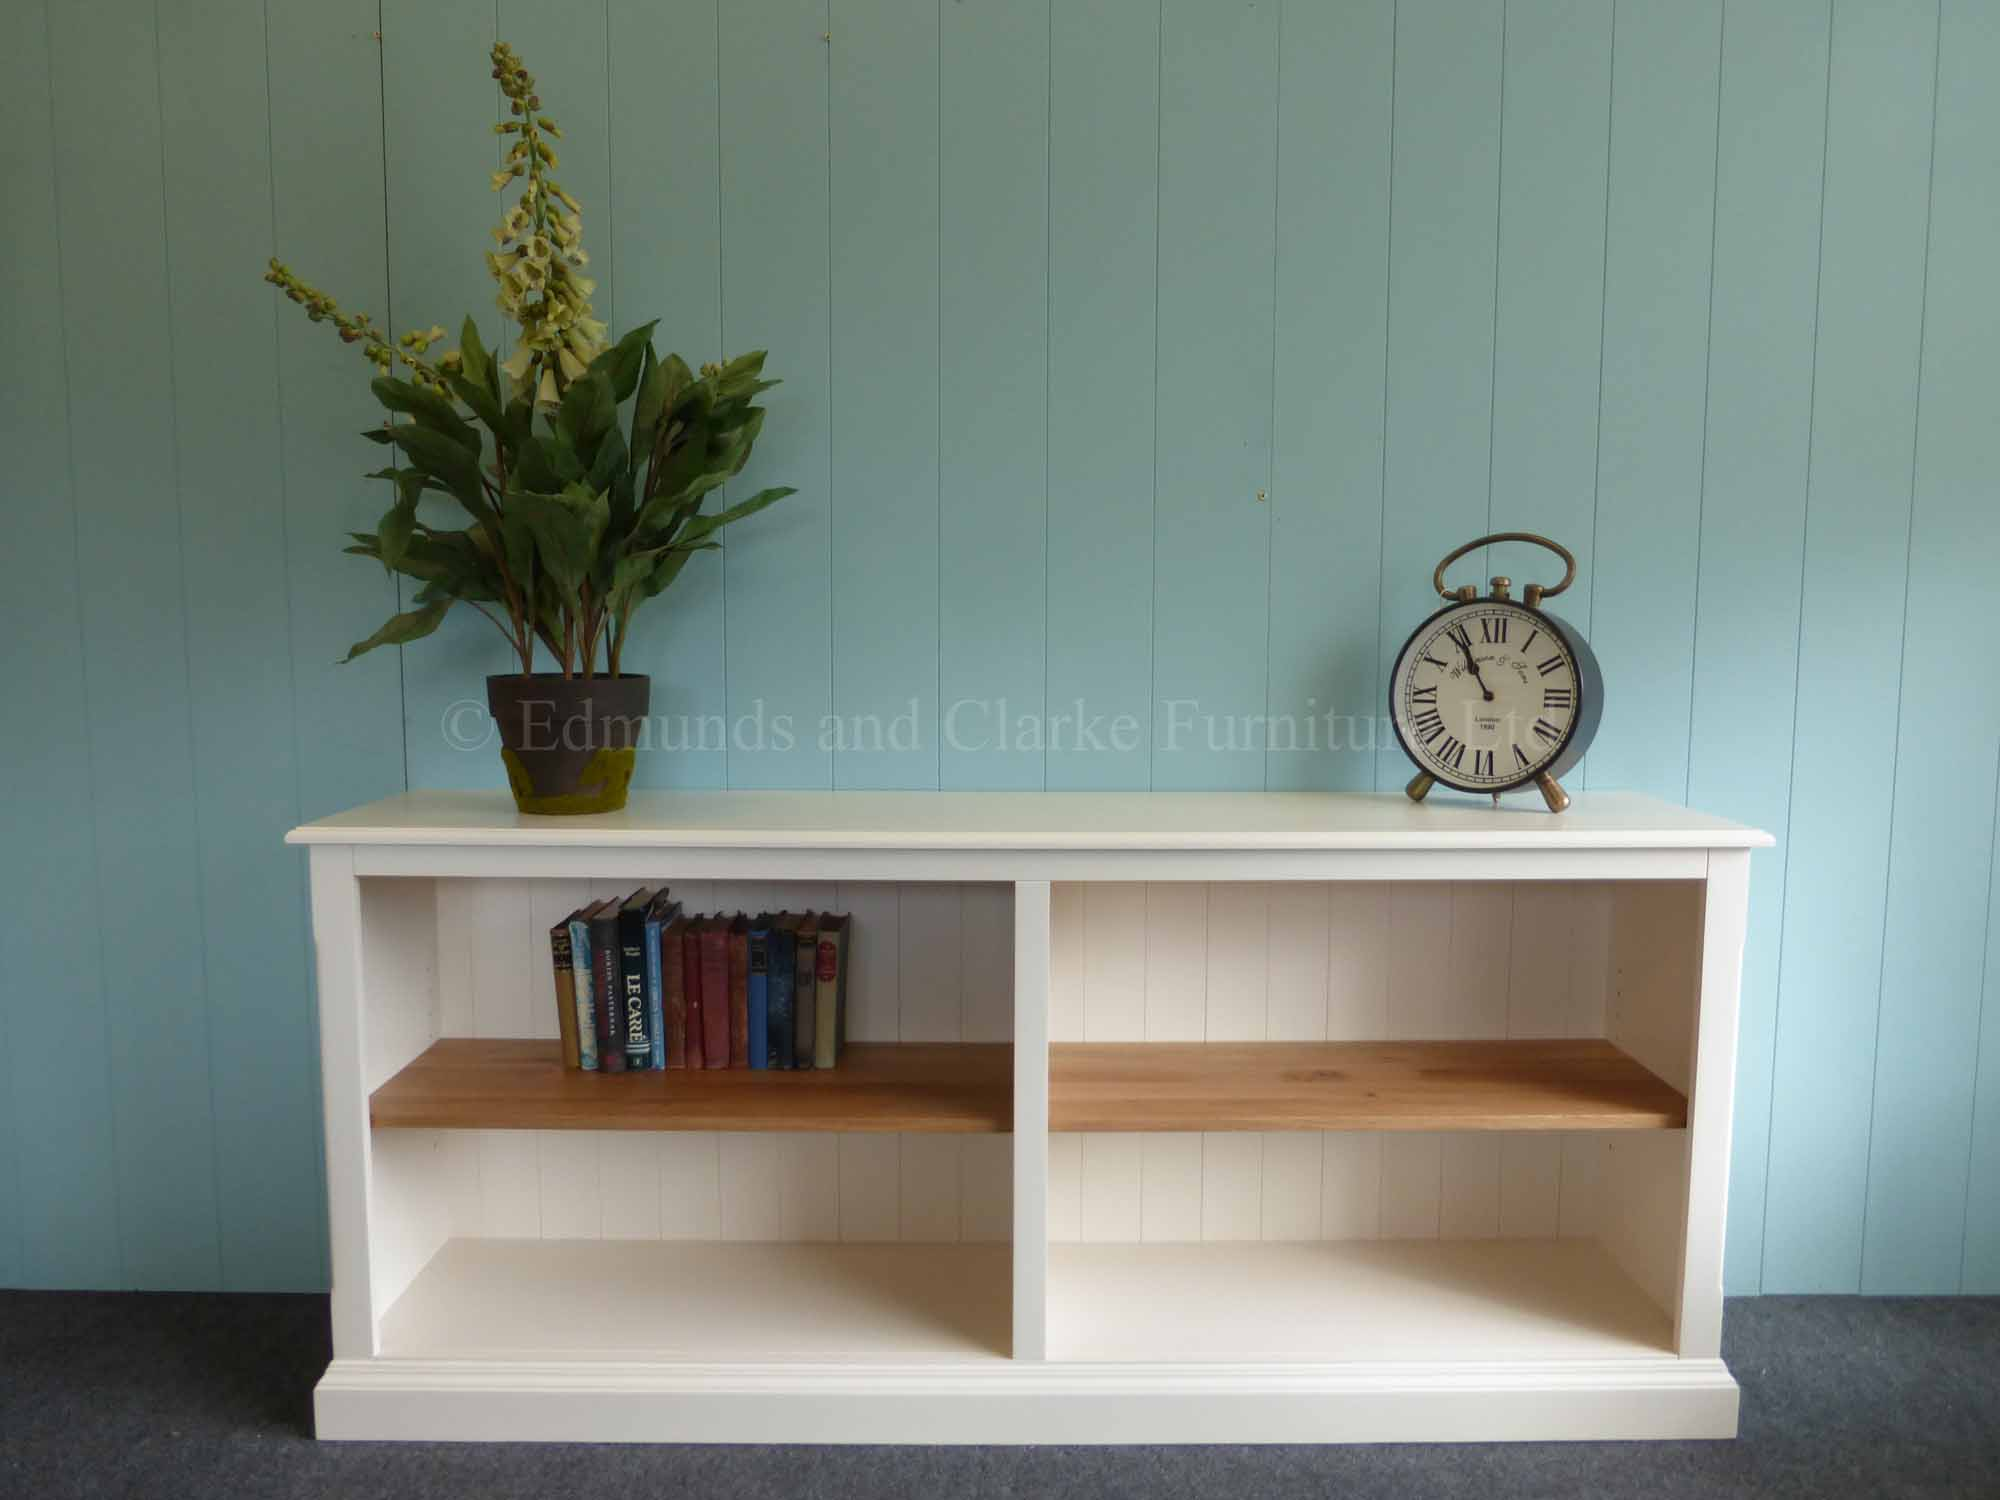 Edmunds painted low long double bookcase with oak shelves